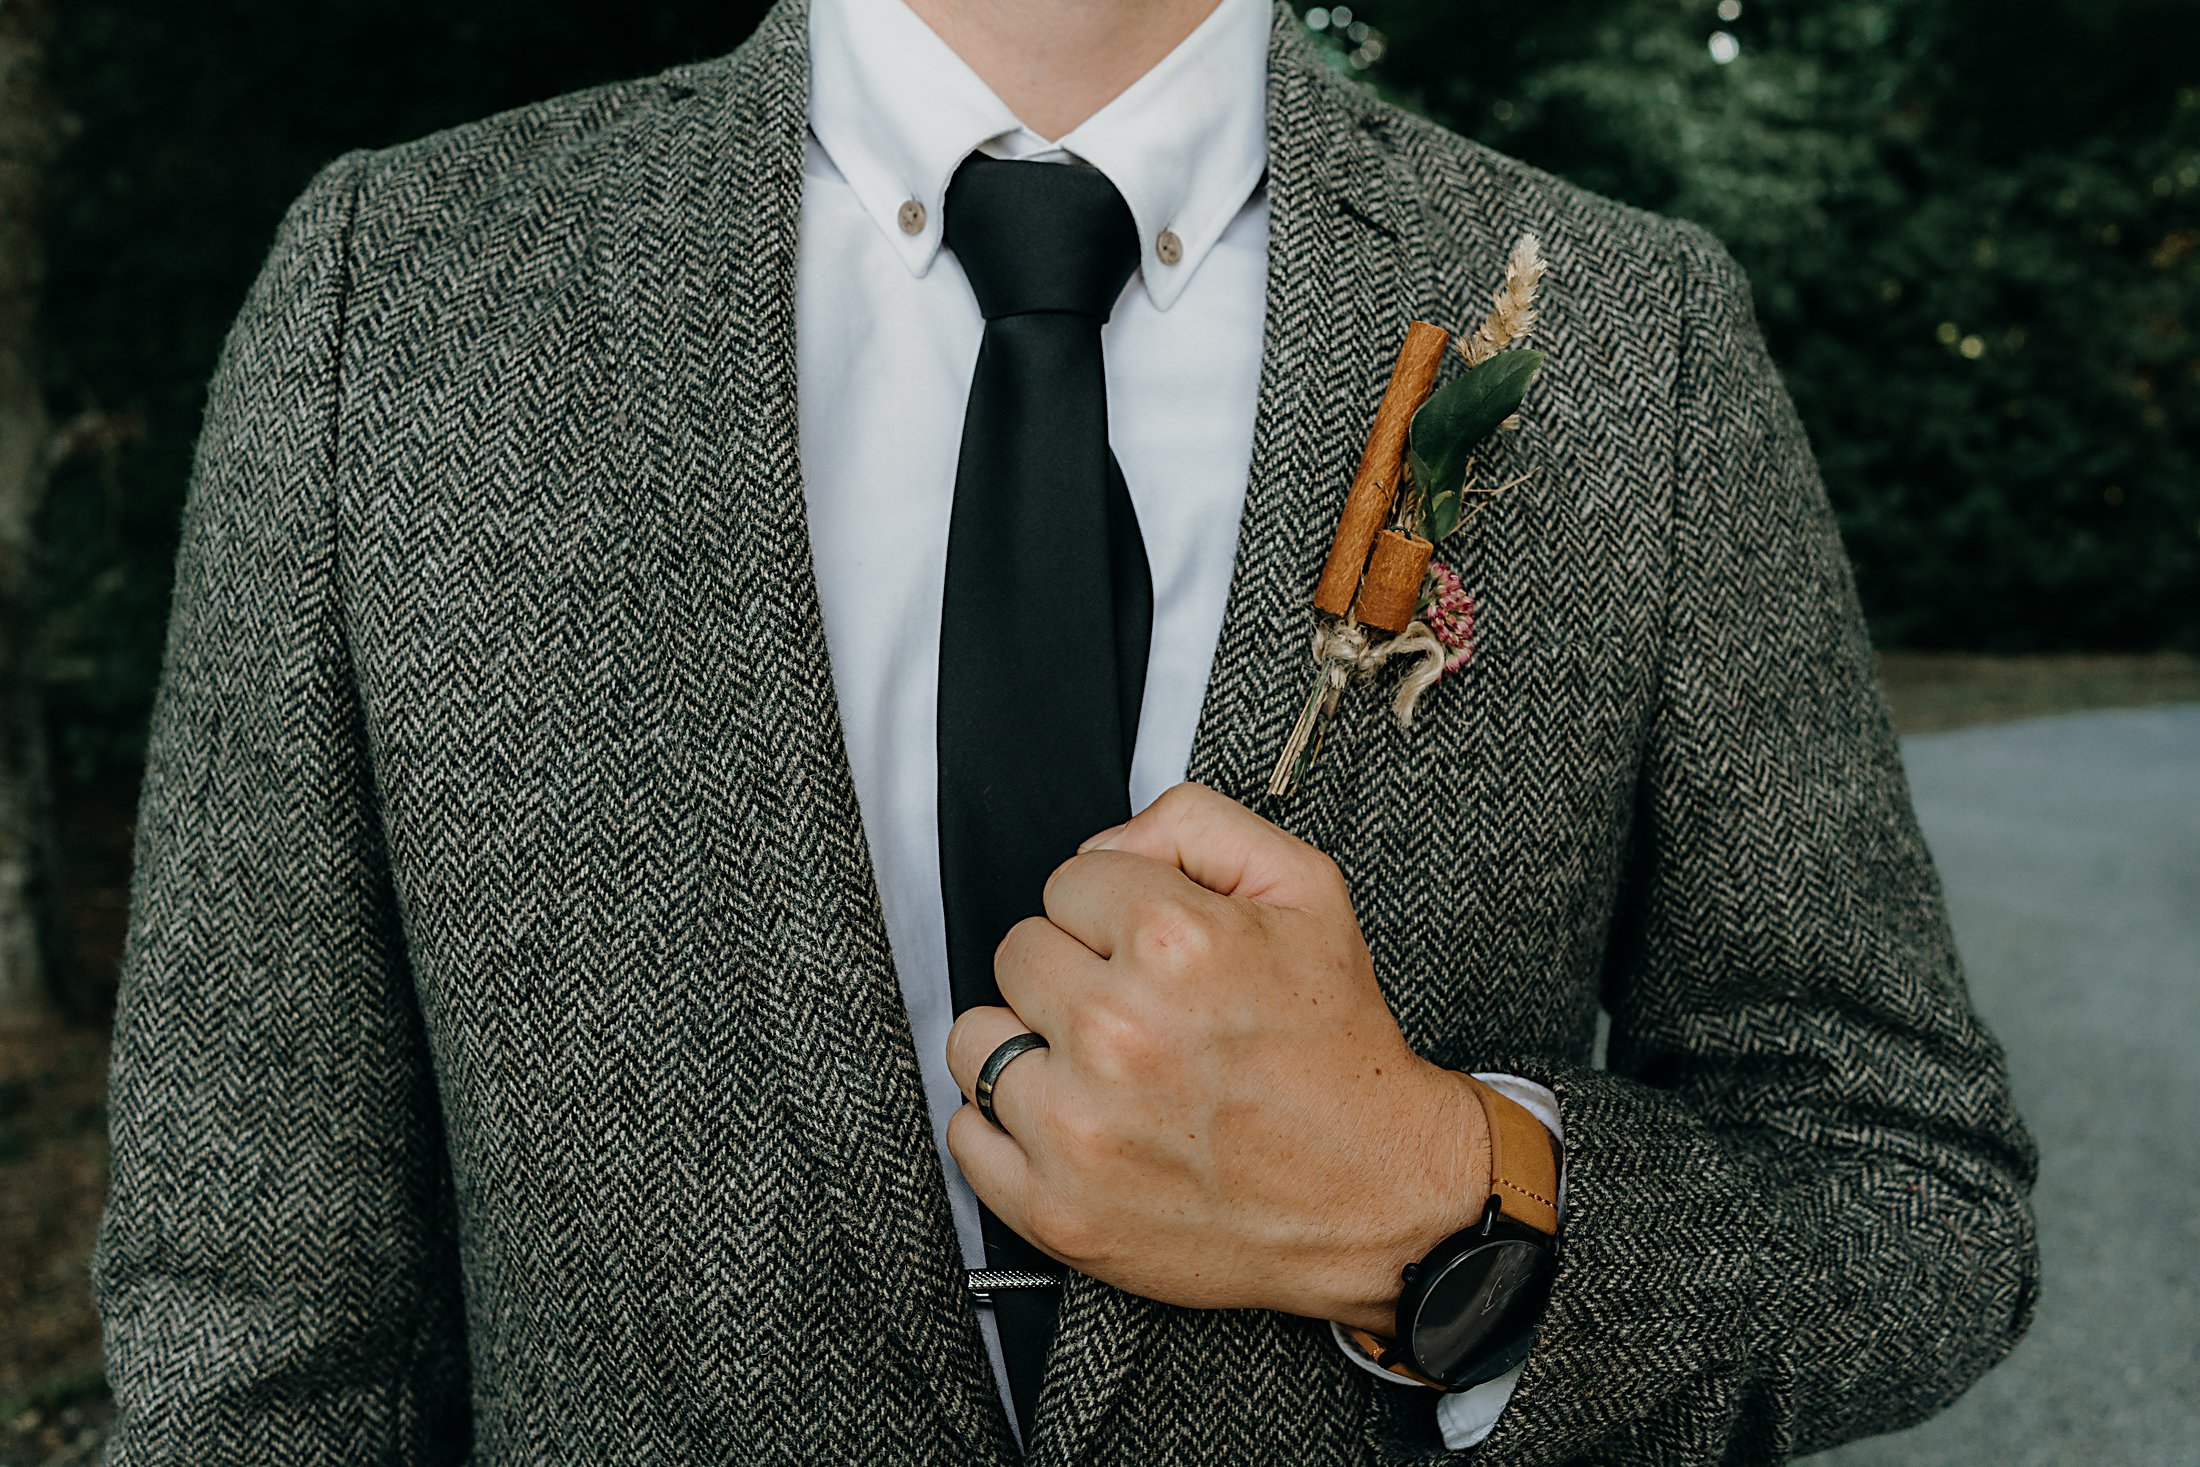 Groom bottonhole with cinnamon stick